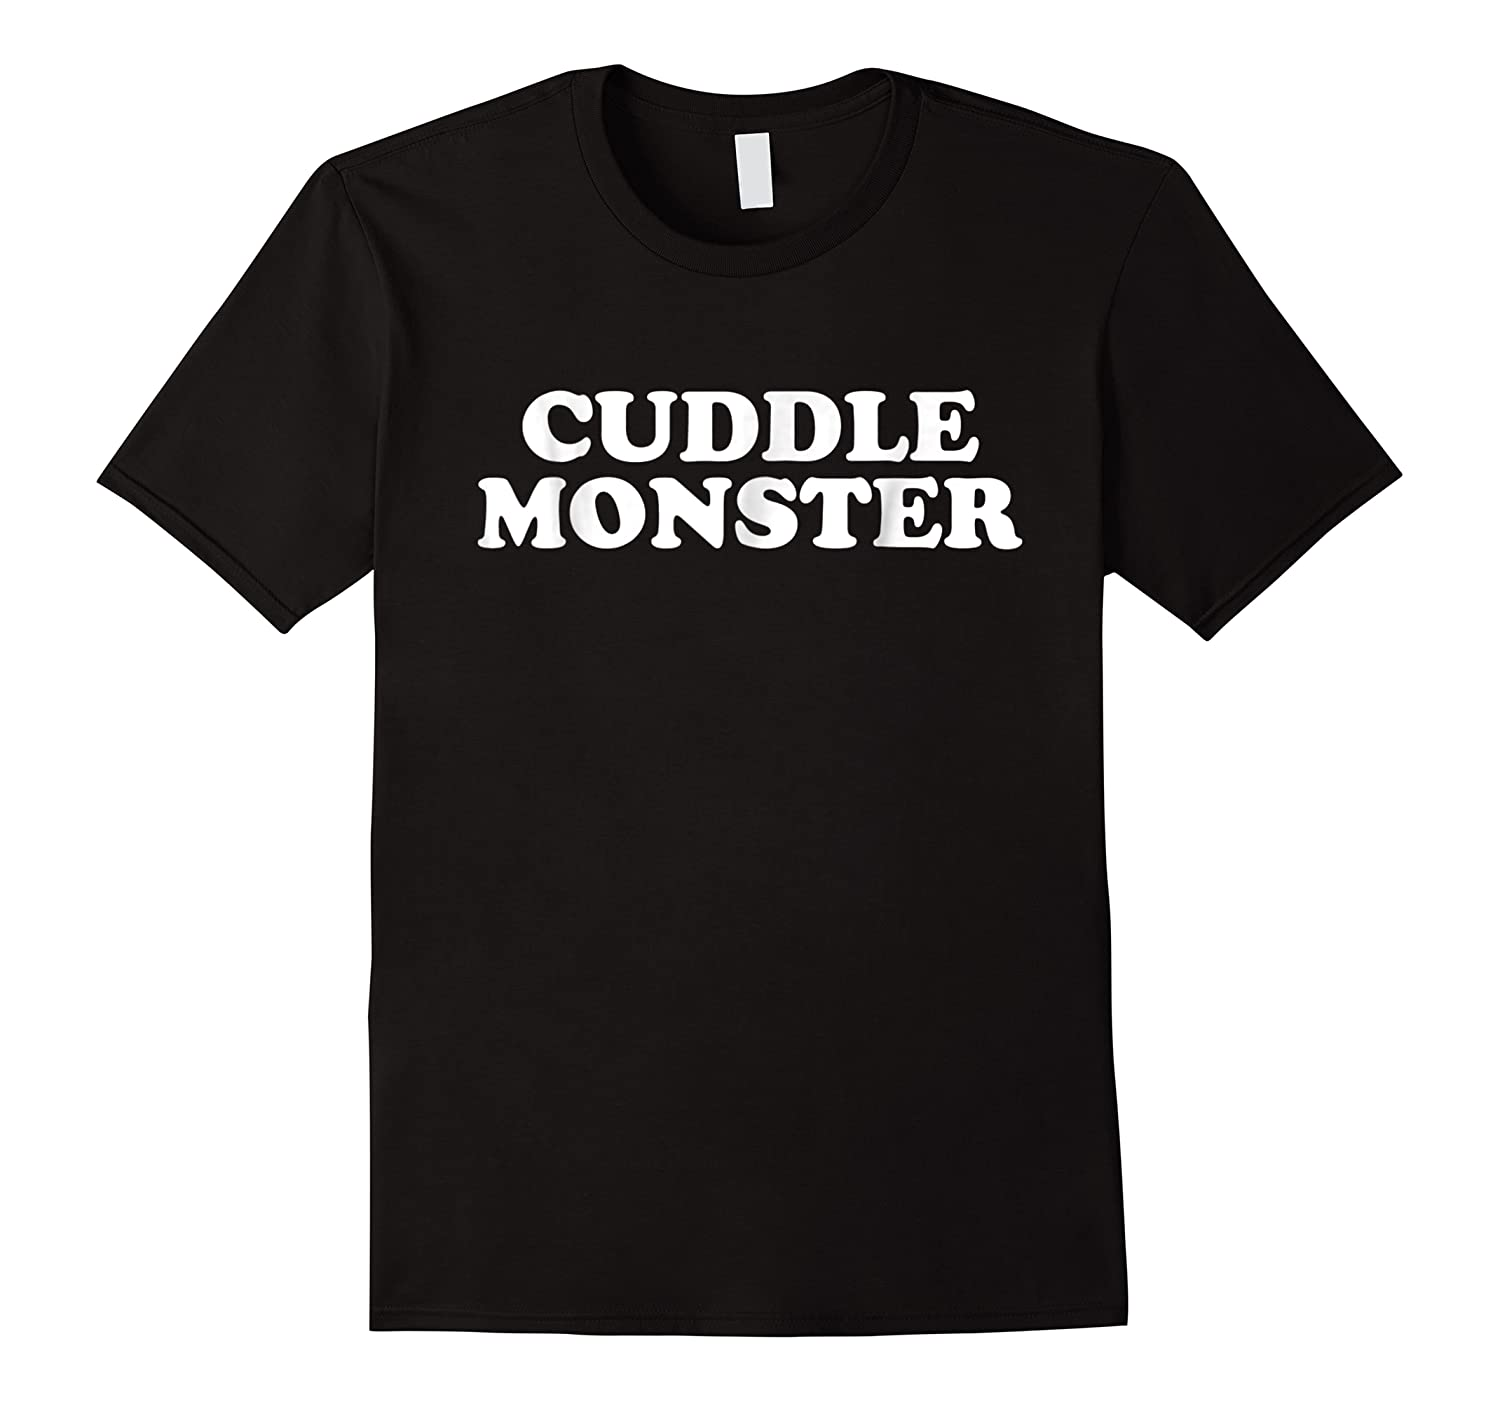 Funny Cuddle Monster T-shirt